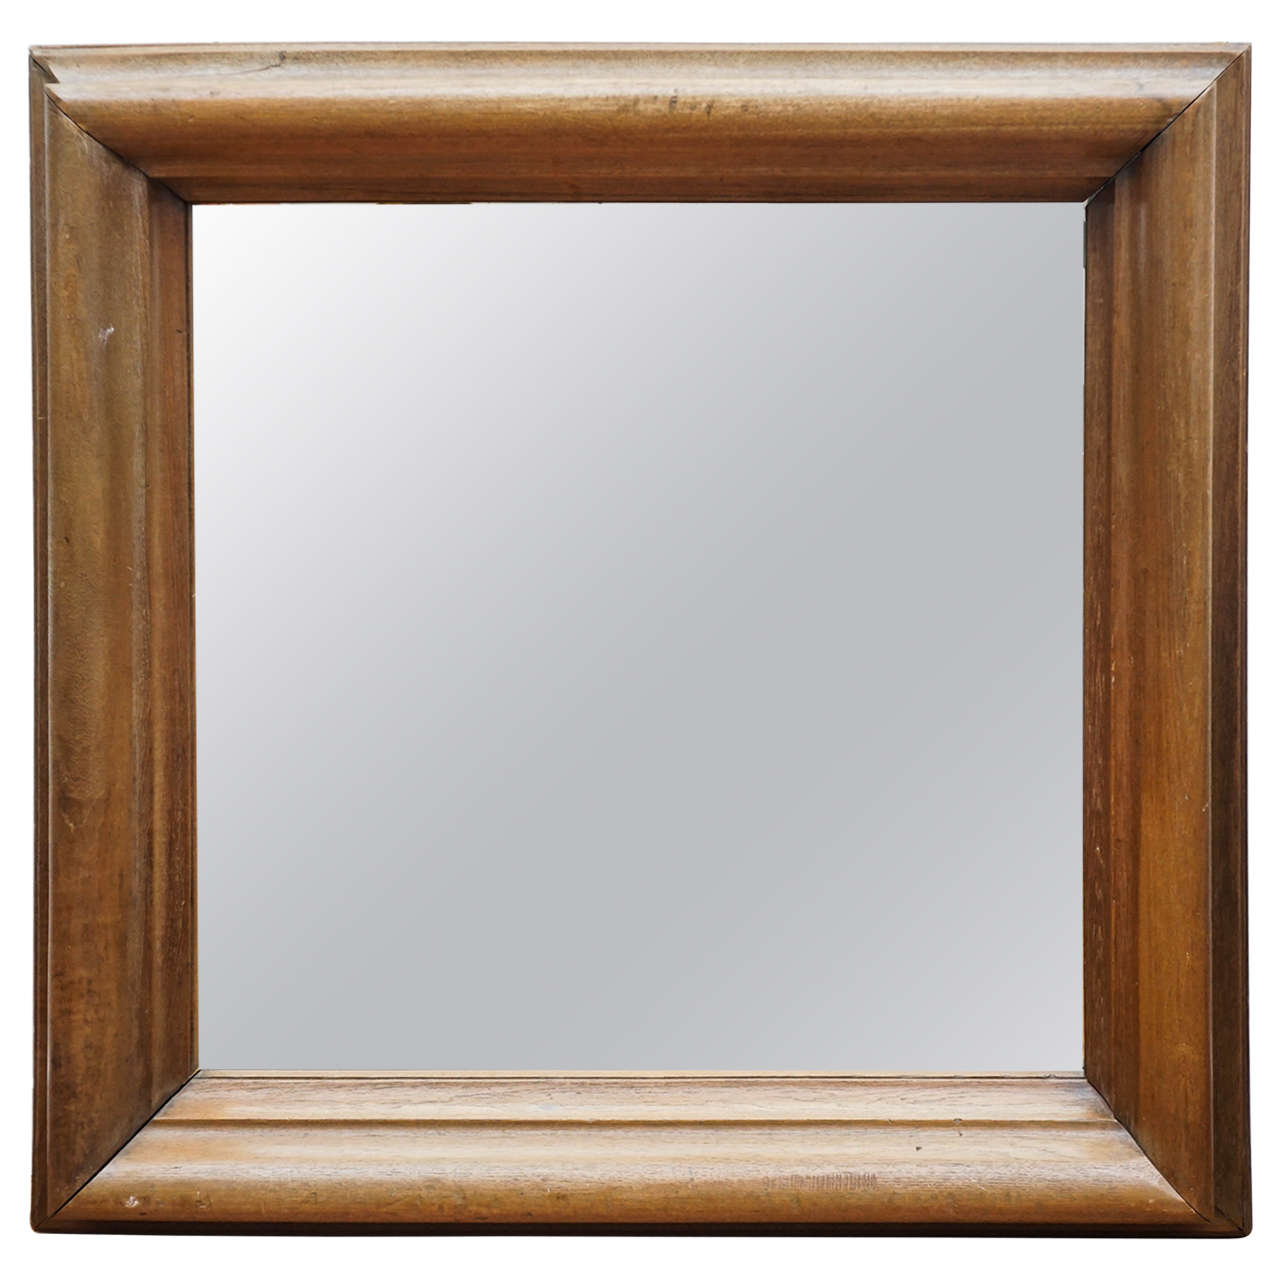 large wood frame mirror 1 - Wood Framed Mirrors